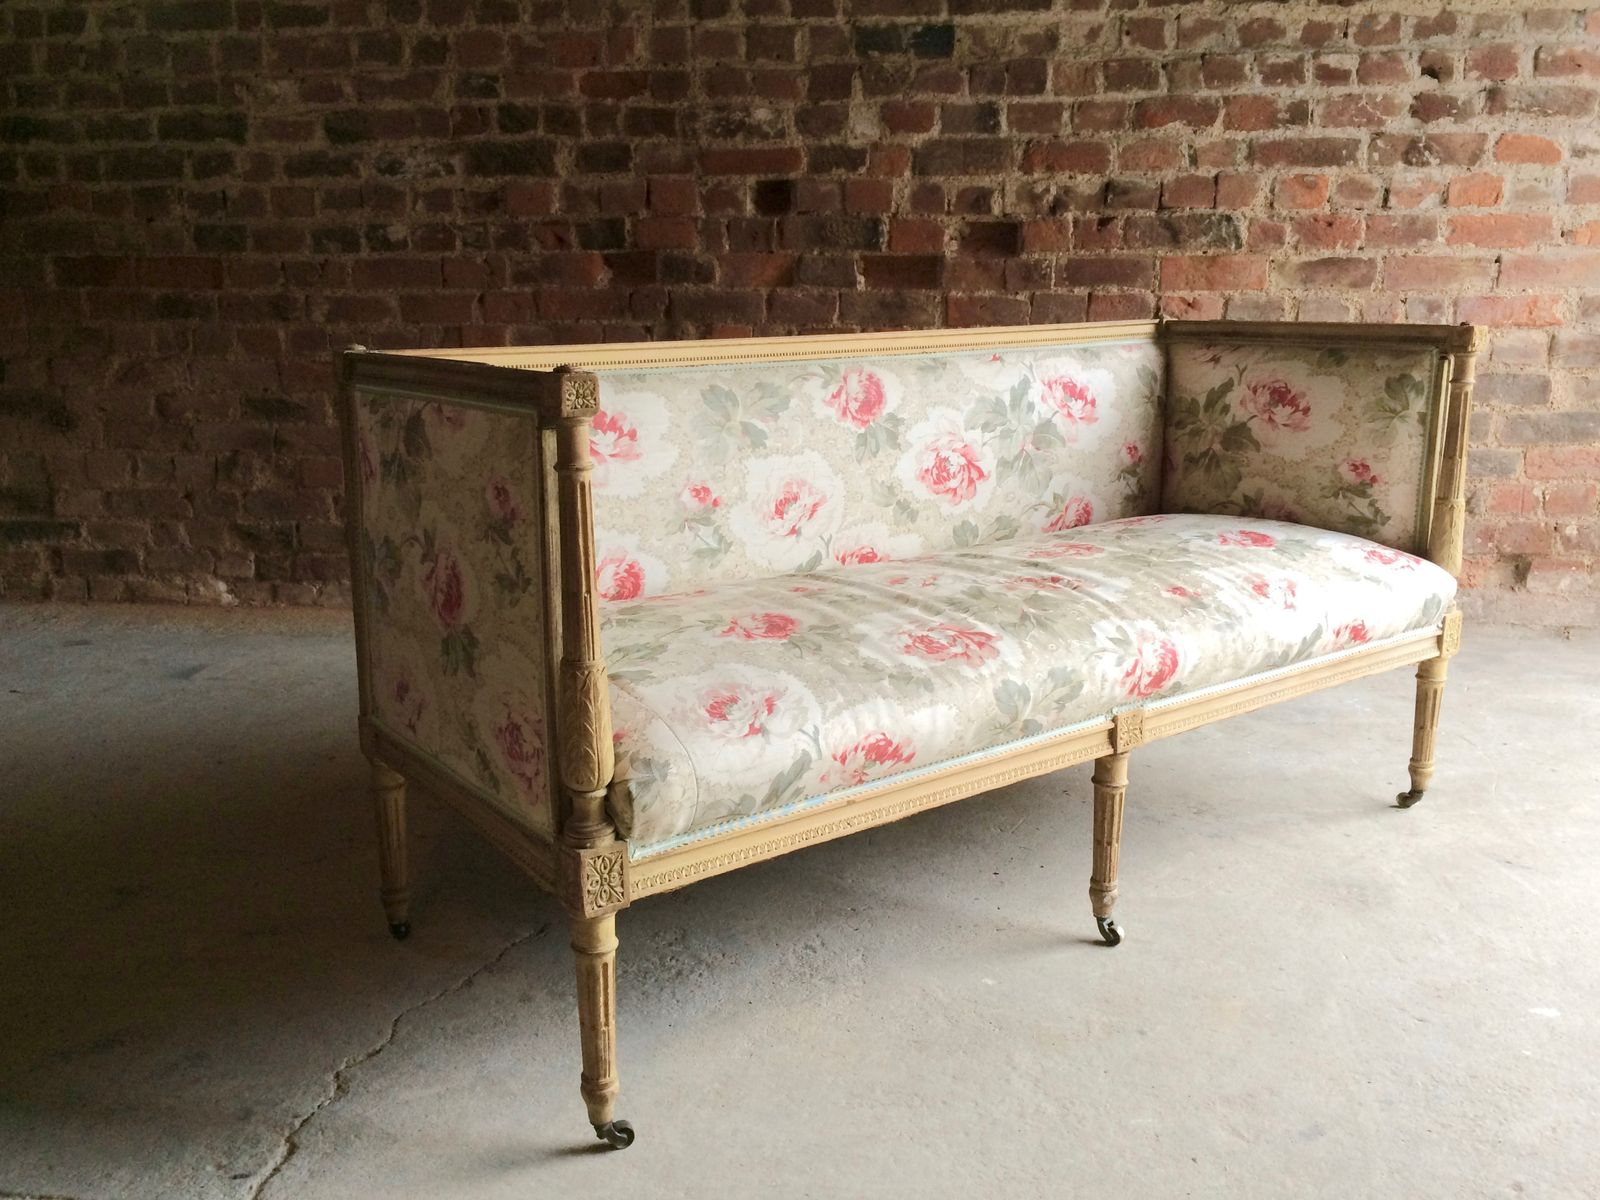 Antique french salon sofa in beech 1770s for sale at pamono for Salon sofa for sale